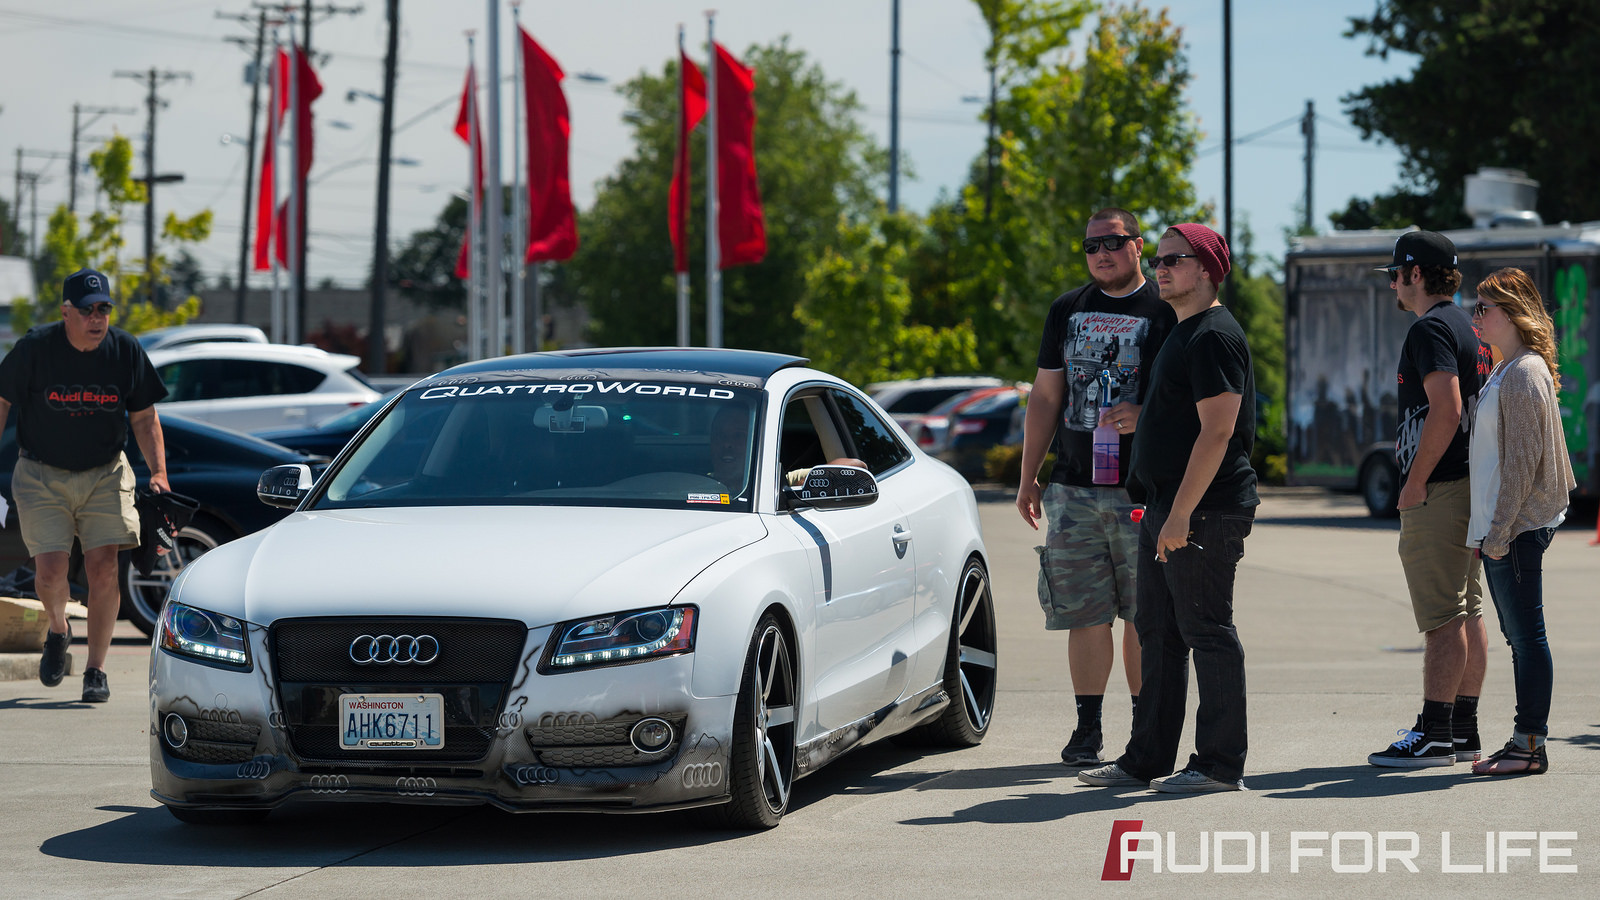 Photo from Audi Expo 2014